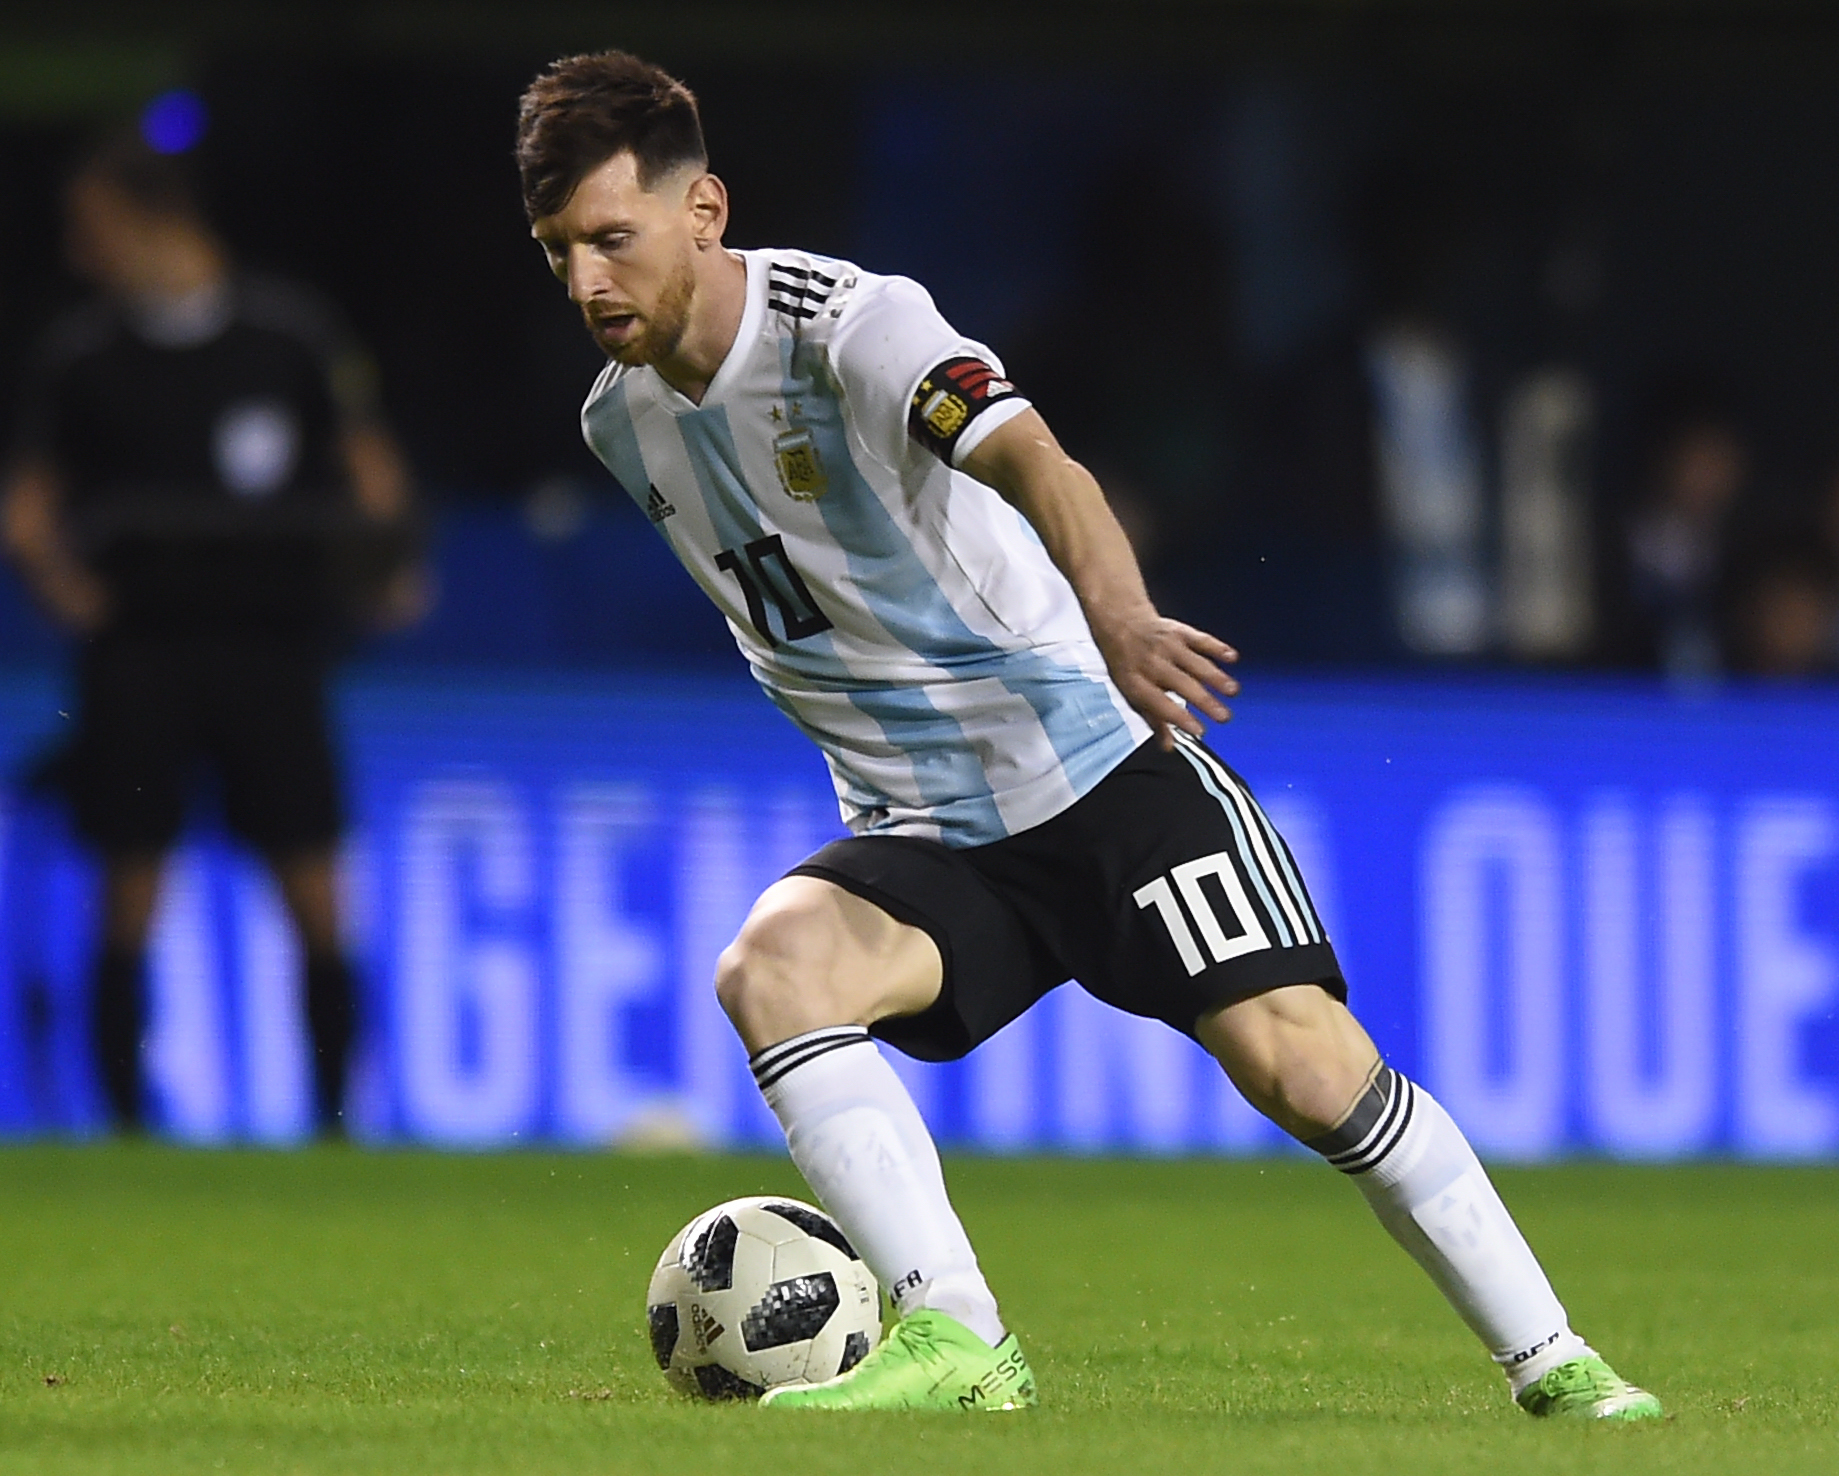 BUENOS AIRES, ARGENTINA - MAY 29: Lionel Messi of Argentina drives the ball during an international friendly match between Argentina and Haiti at Alberto J. Armando Stadium on May 29, 2018 in Buenos Aires, Argentina.